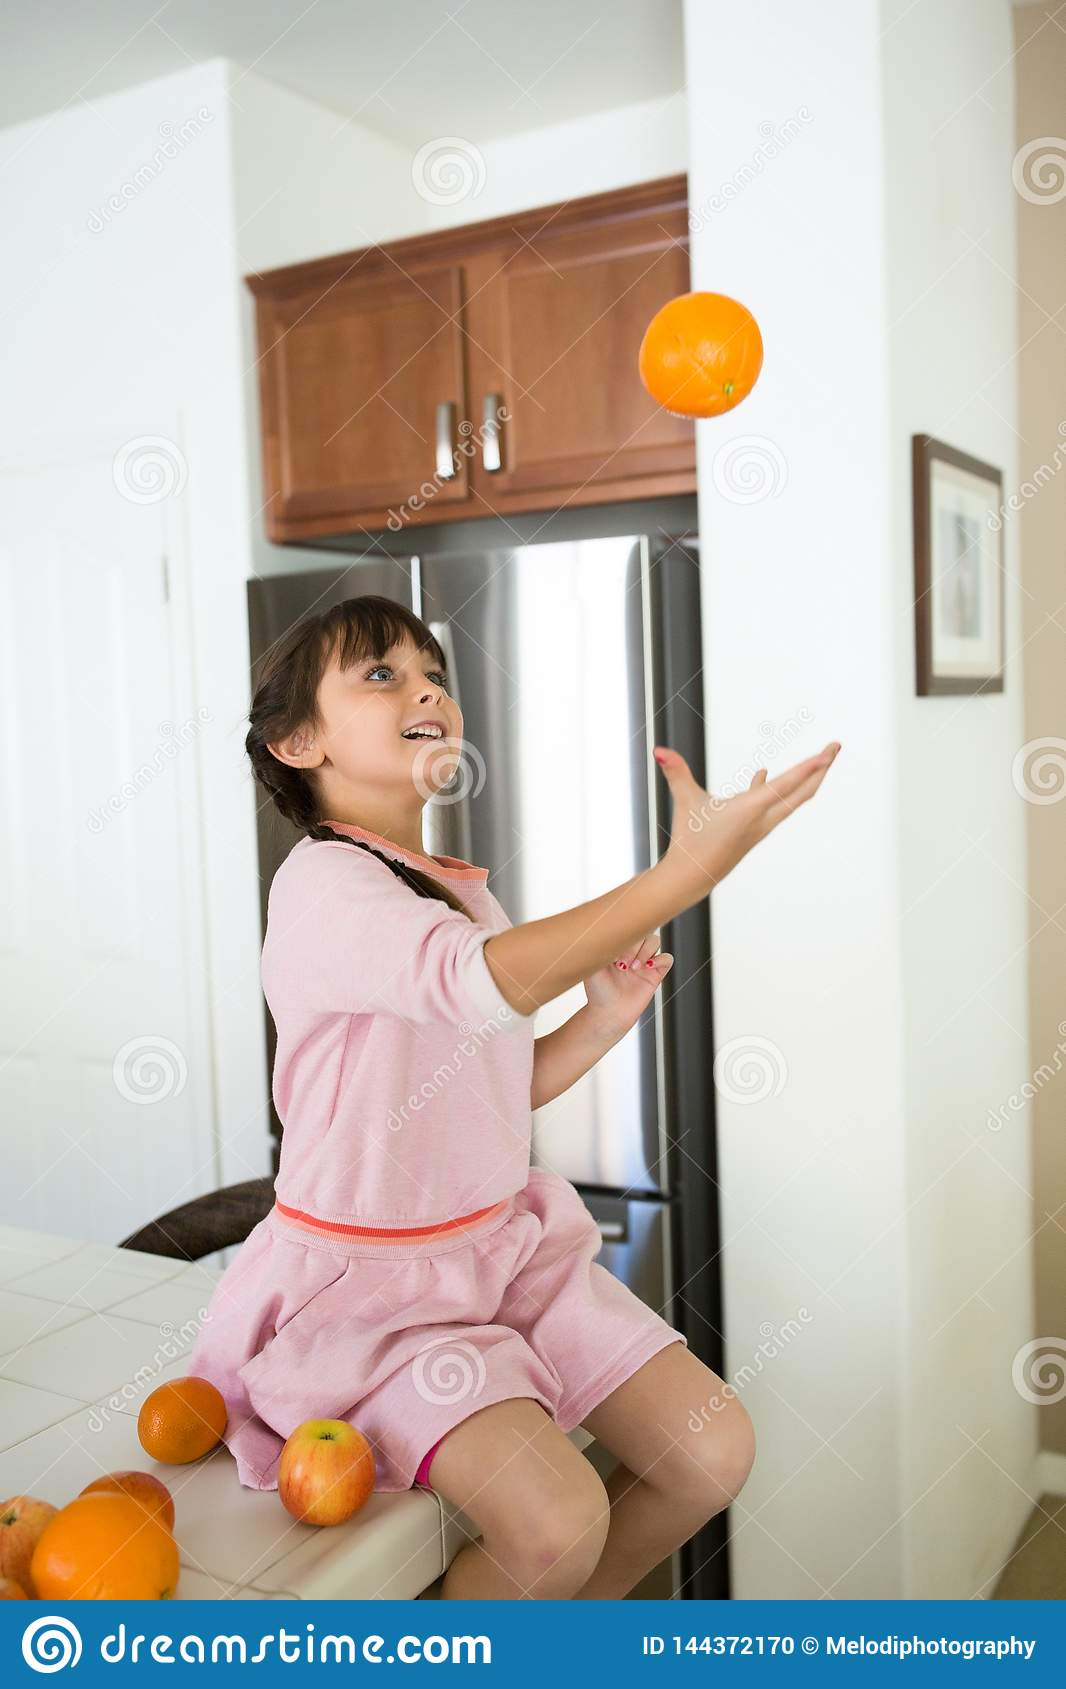 Girl in kitchen with oranges